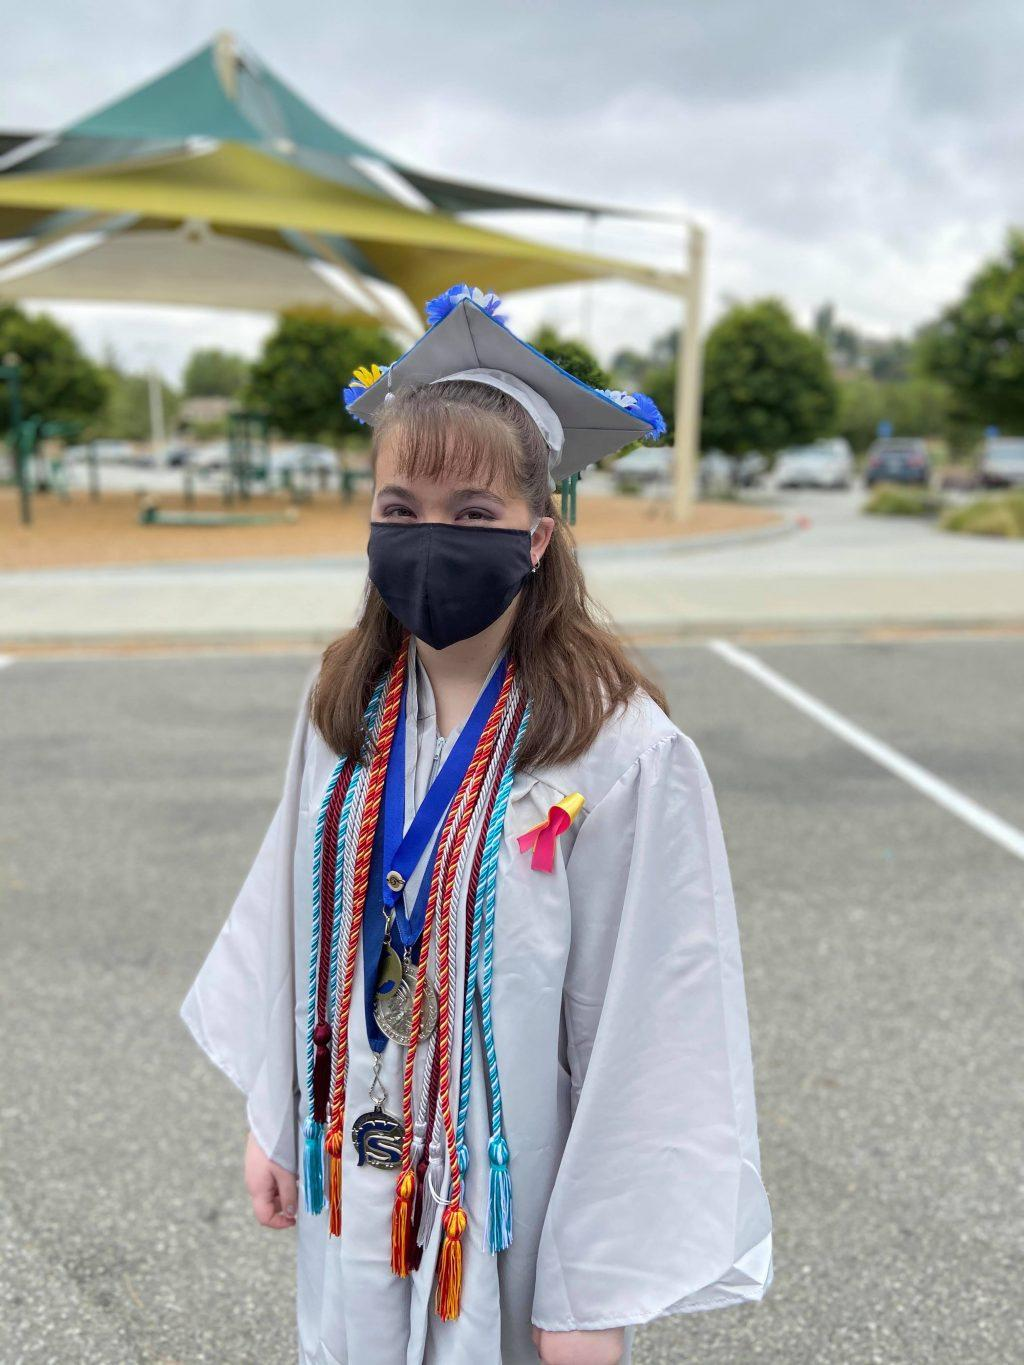 Then-high-school-senior Navia masks up before entering her socially-distant graduation ceremony from her Santa Clarita high school. Students were able to walk through the ceremony but were required to abide by COVID-19 restrictions.